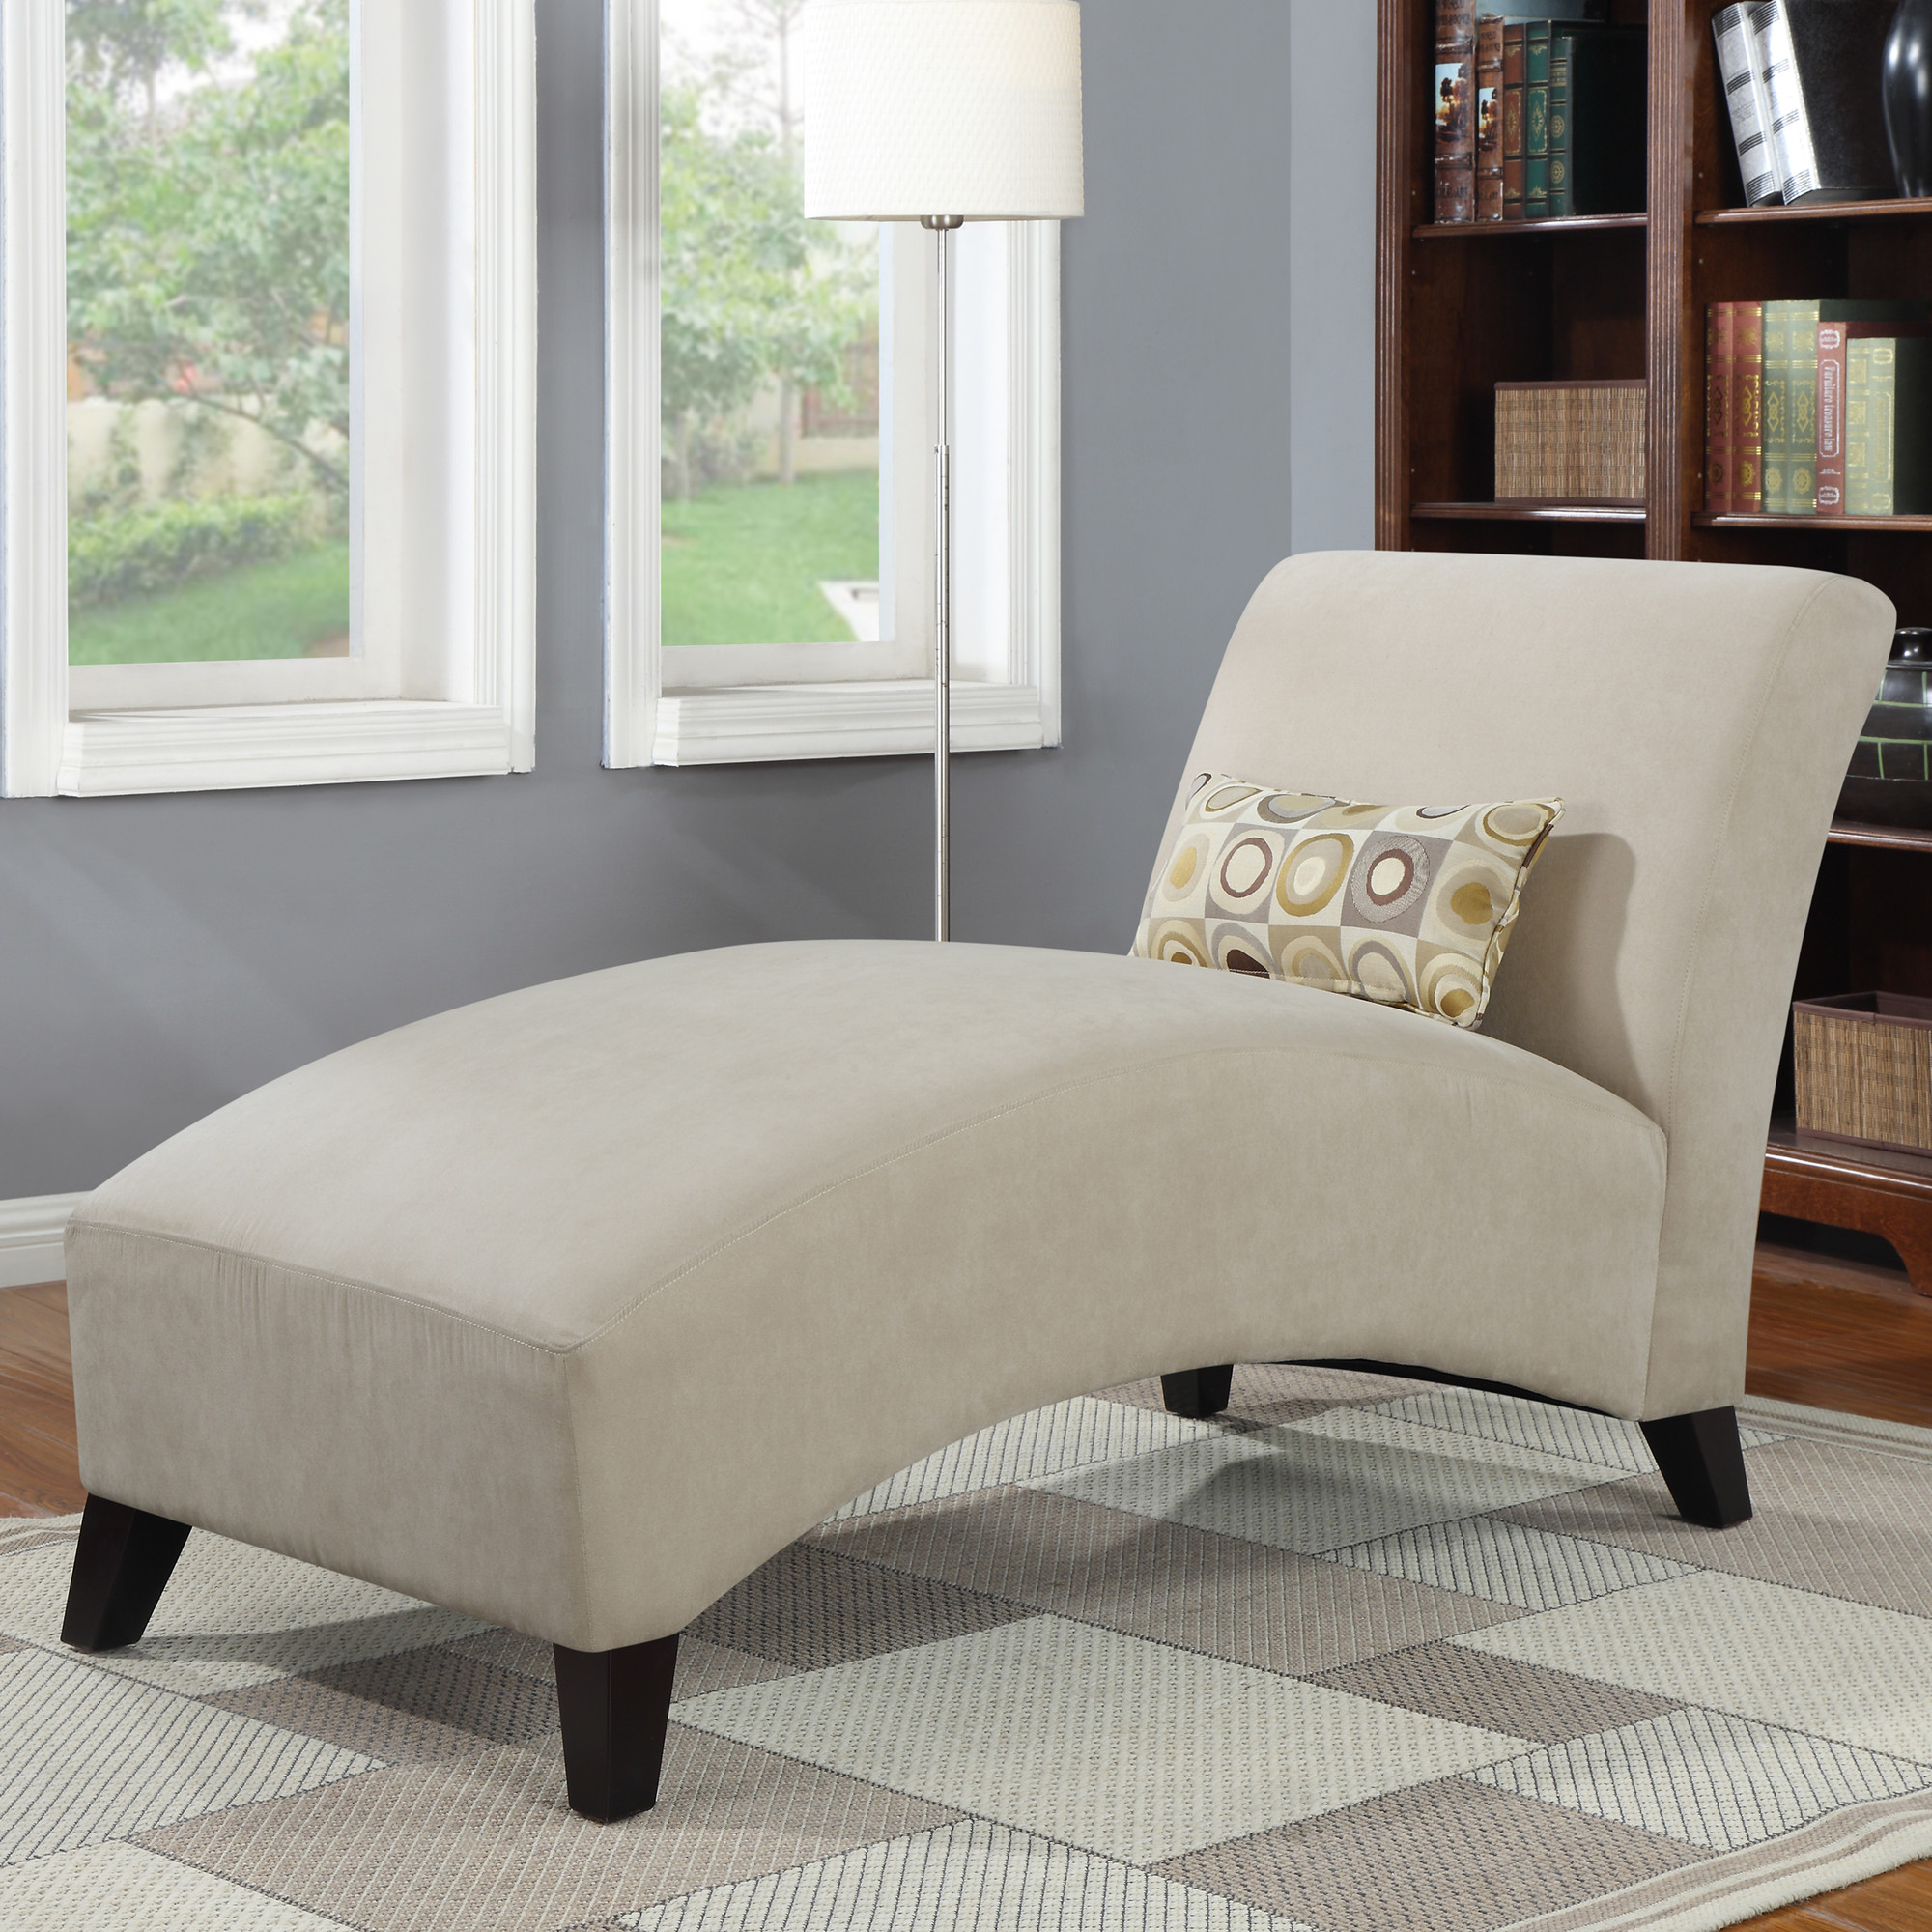 Image of: Indoor Chaise Lounge Chairs for Bedroom